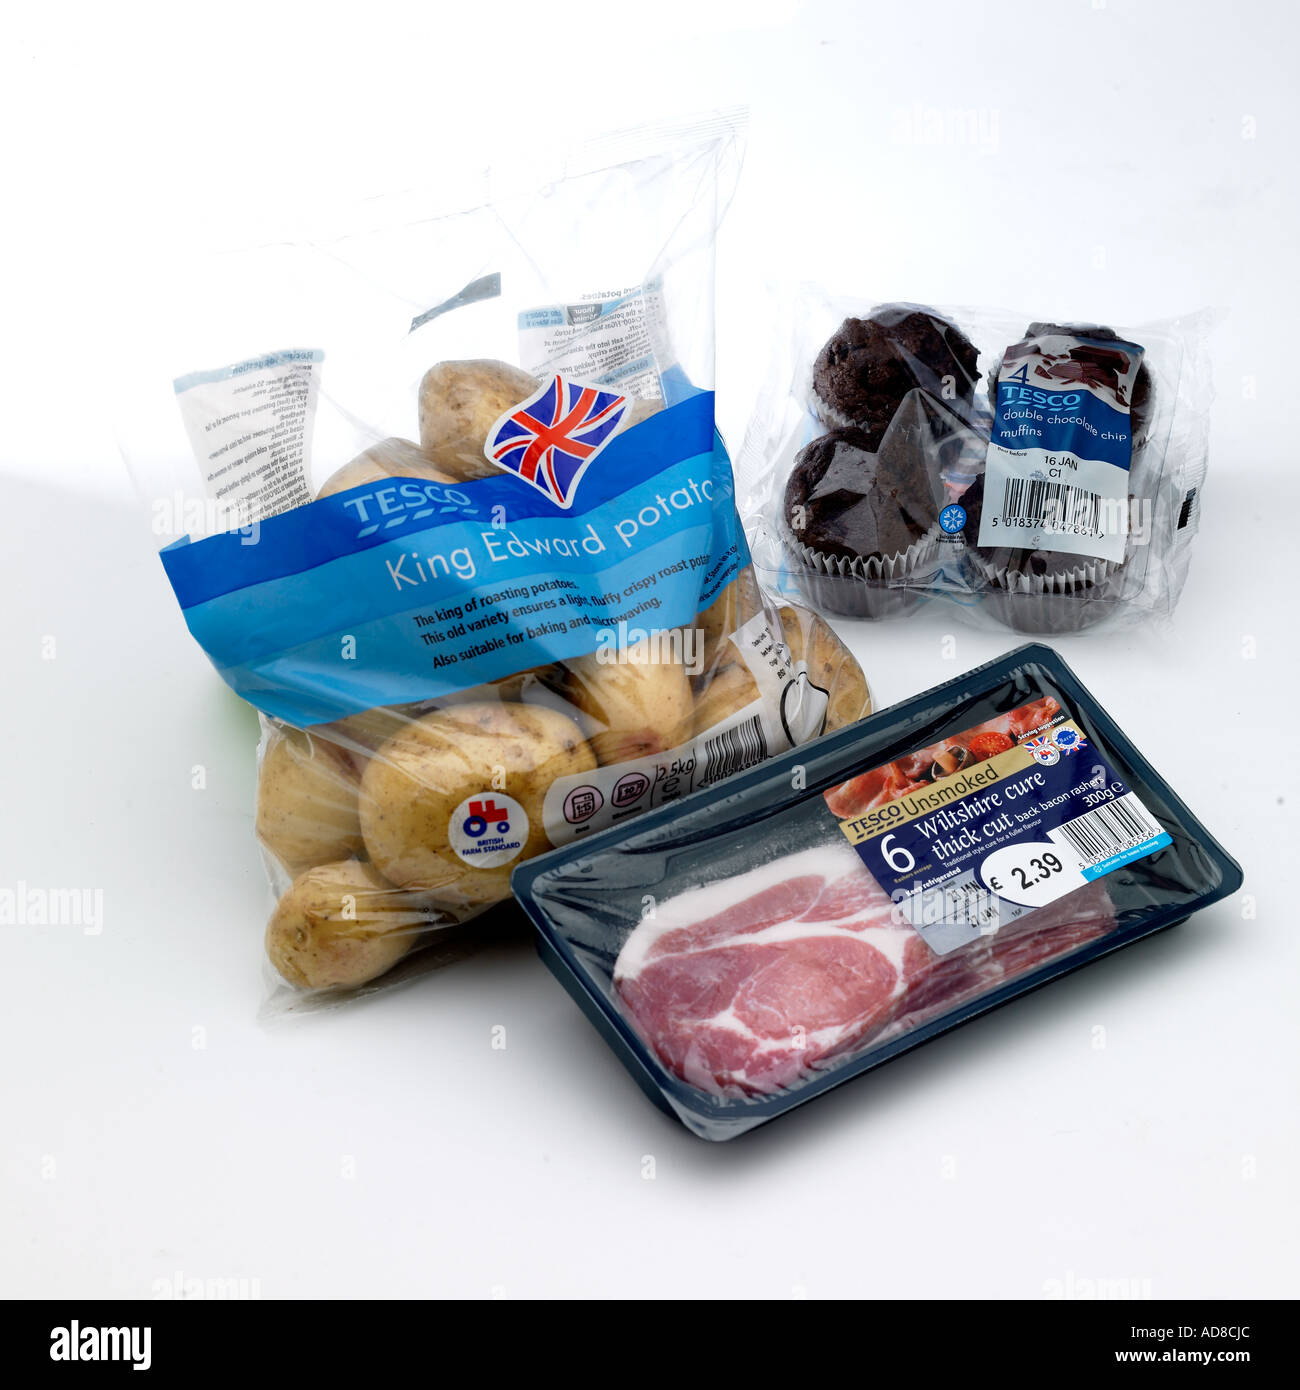 Selection of different types of food packaging cured bacon packet bag of King Edward potatoes chocolate muffins in plastic box - Stock Image